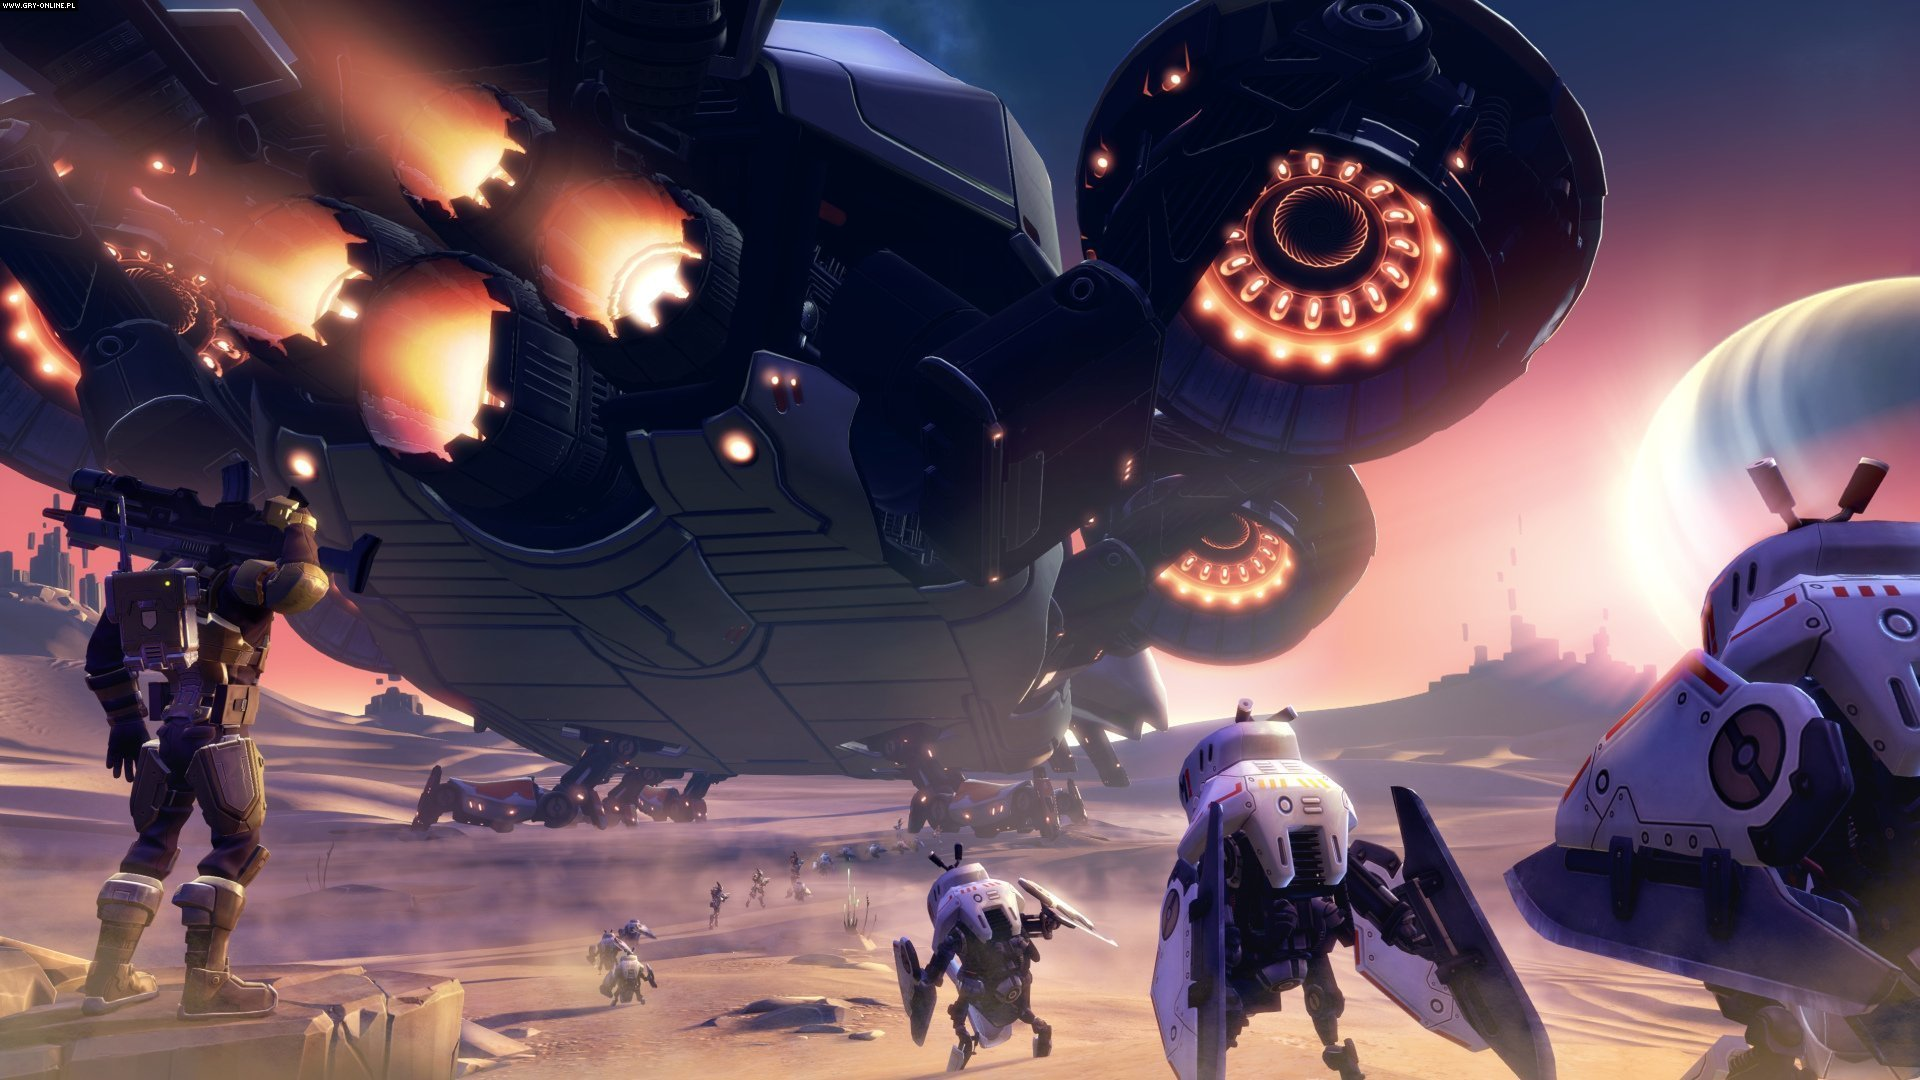 Battleborn PC, PS4, XONE Games Image 64/97, Gearbox Software, 2K Games